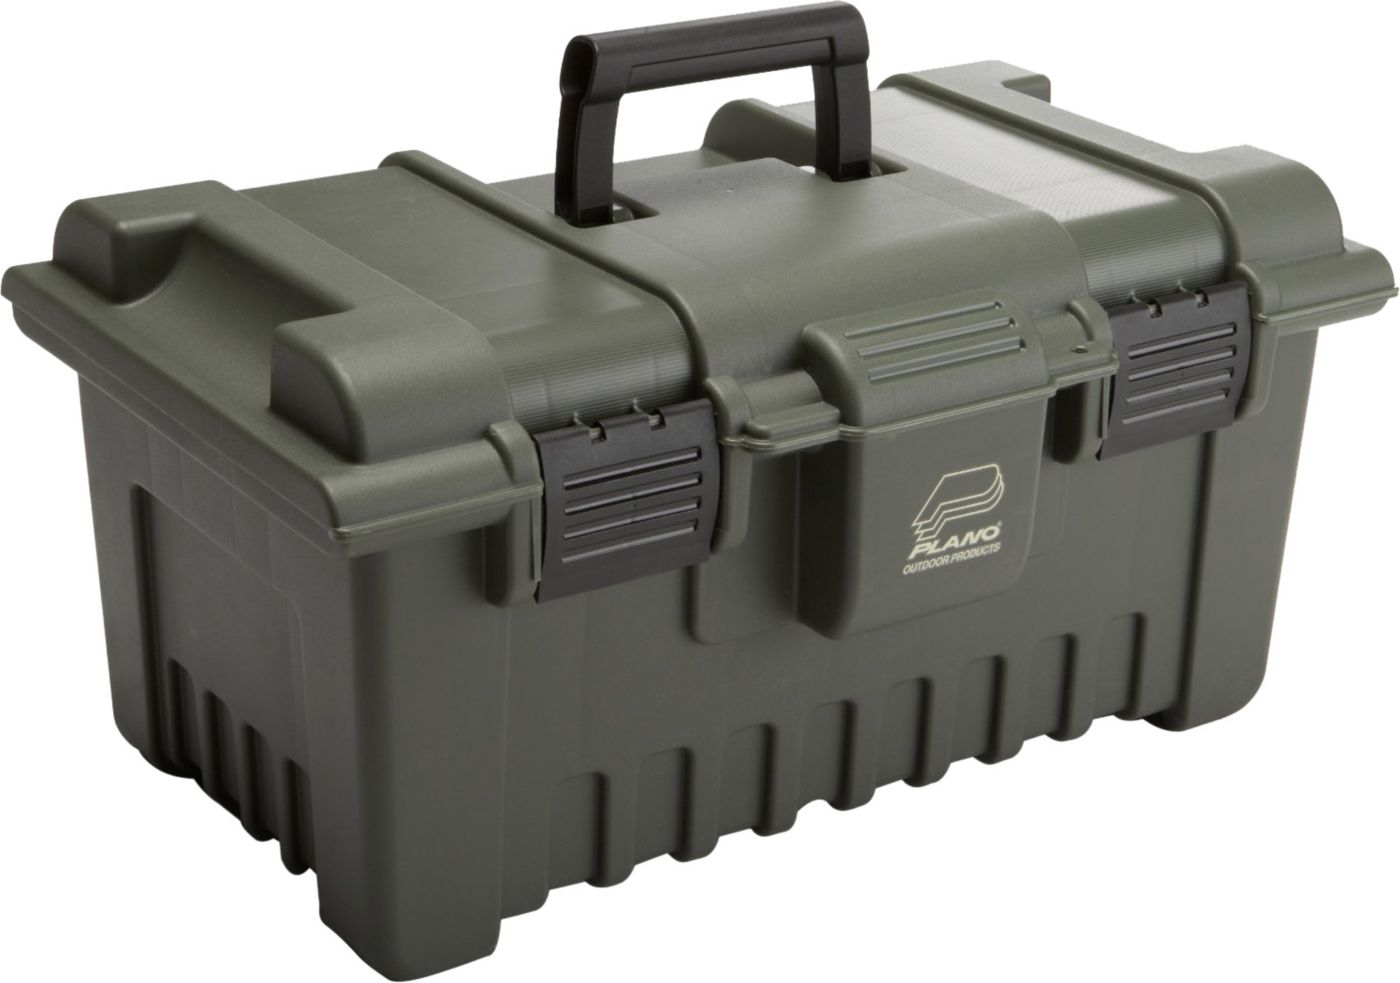 Plano Large Shooters Case | DICK'S Sporting Goods